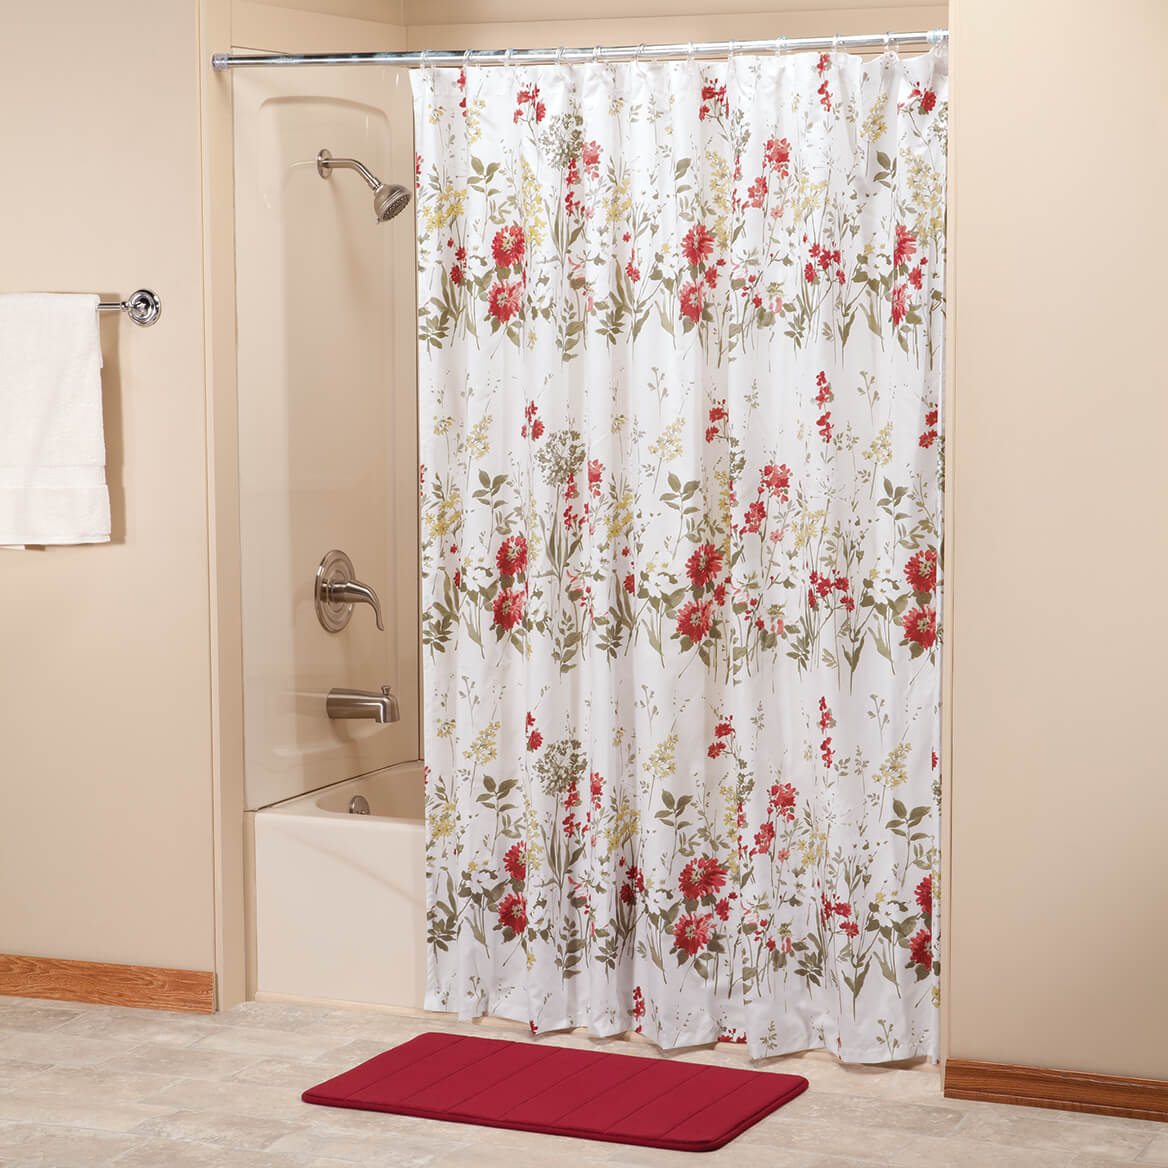 Ruby Meadow Shower Curtain By OakRidgeTM 358130